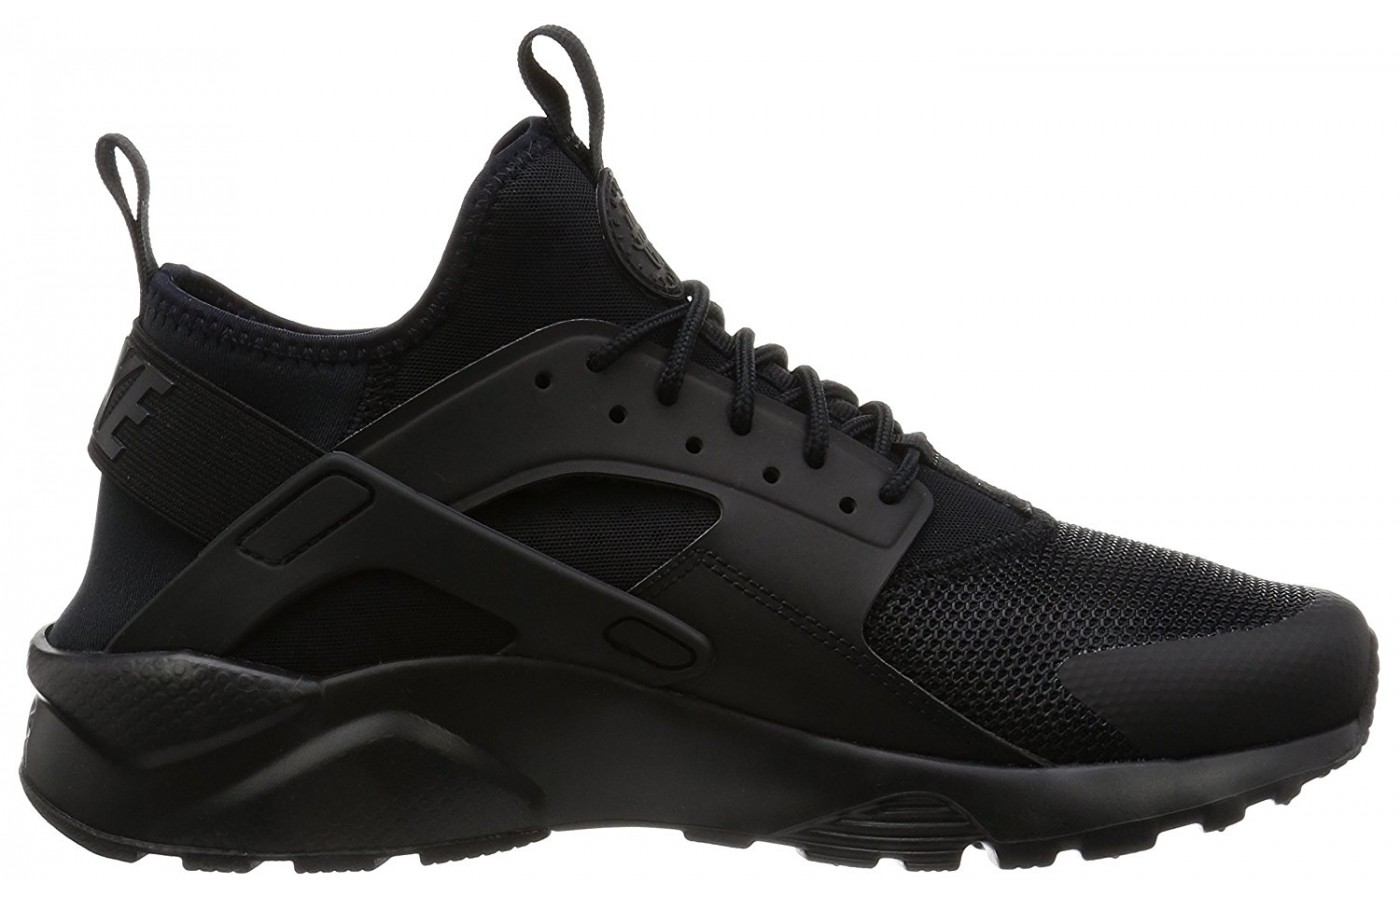 7654e1997e6fa Nike Air Huarache Ultra Reviewed   Tested for Performance - WalkJogRun